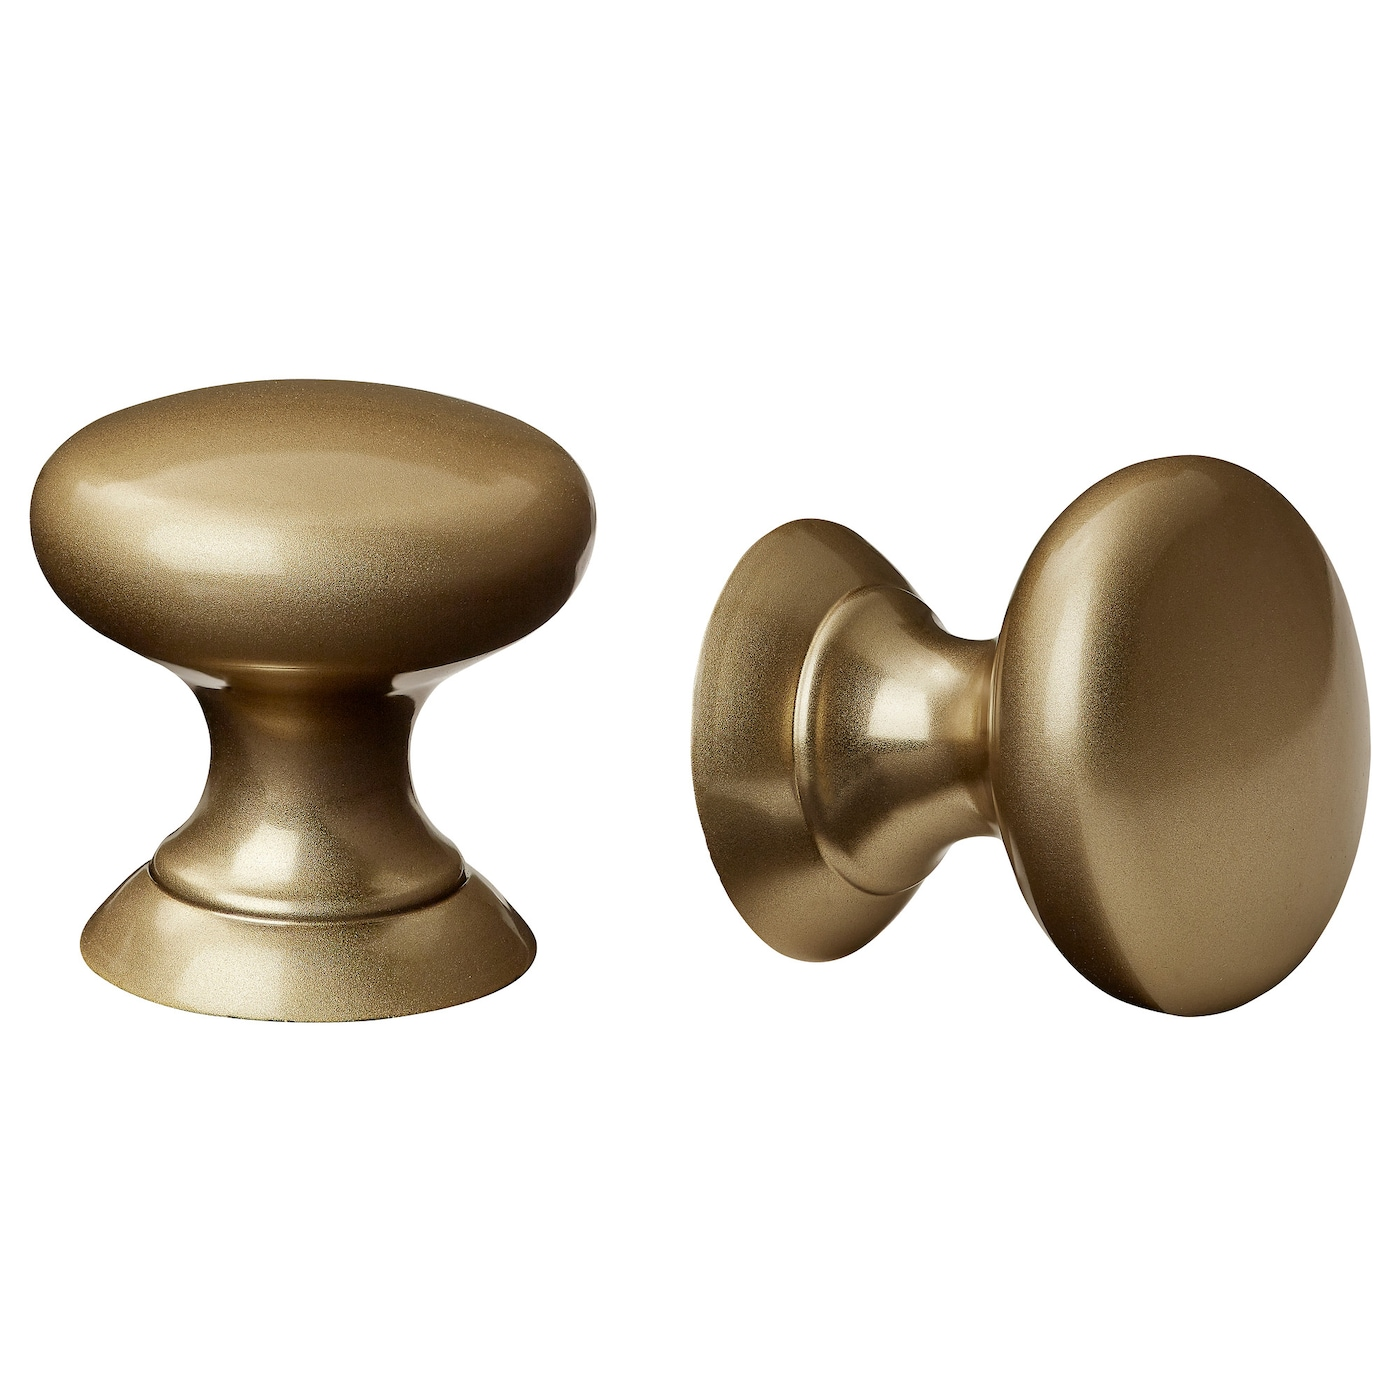 IKEA FÅGLAVIK knob These brass knobs give a good grip and add a traditional touch to your kitchen.